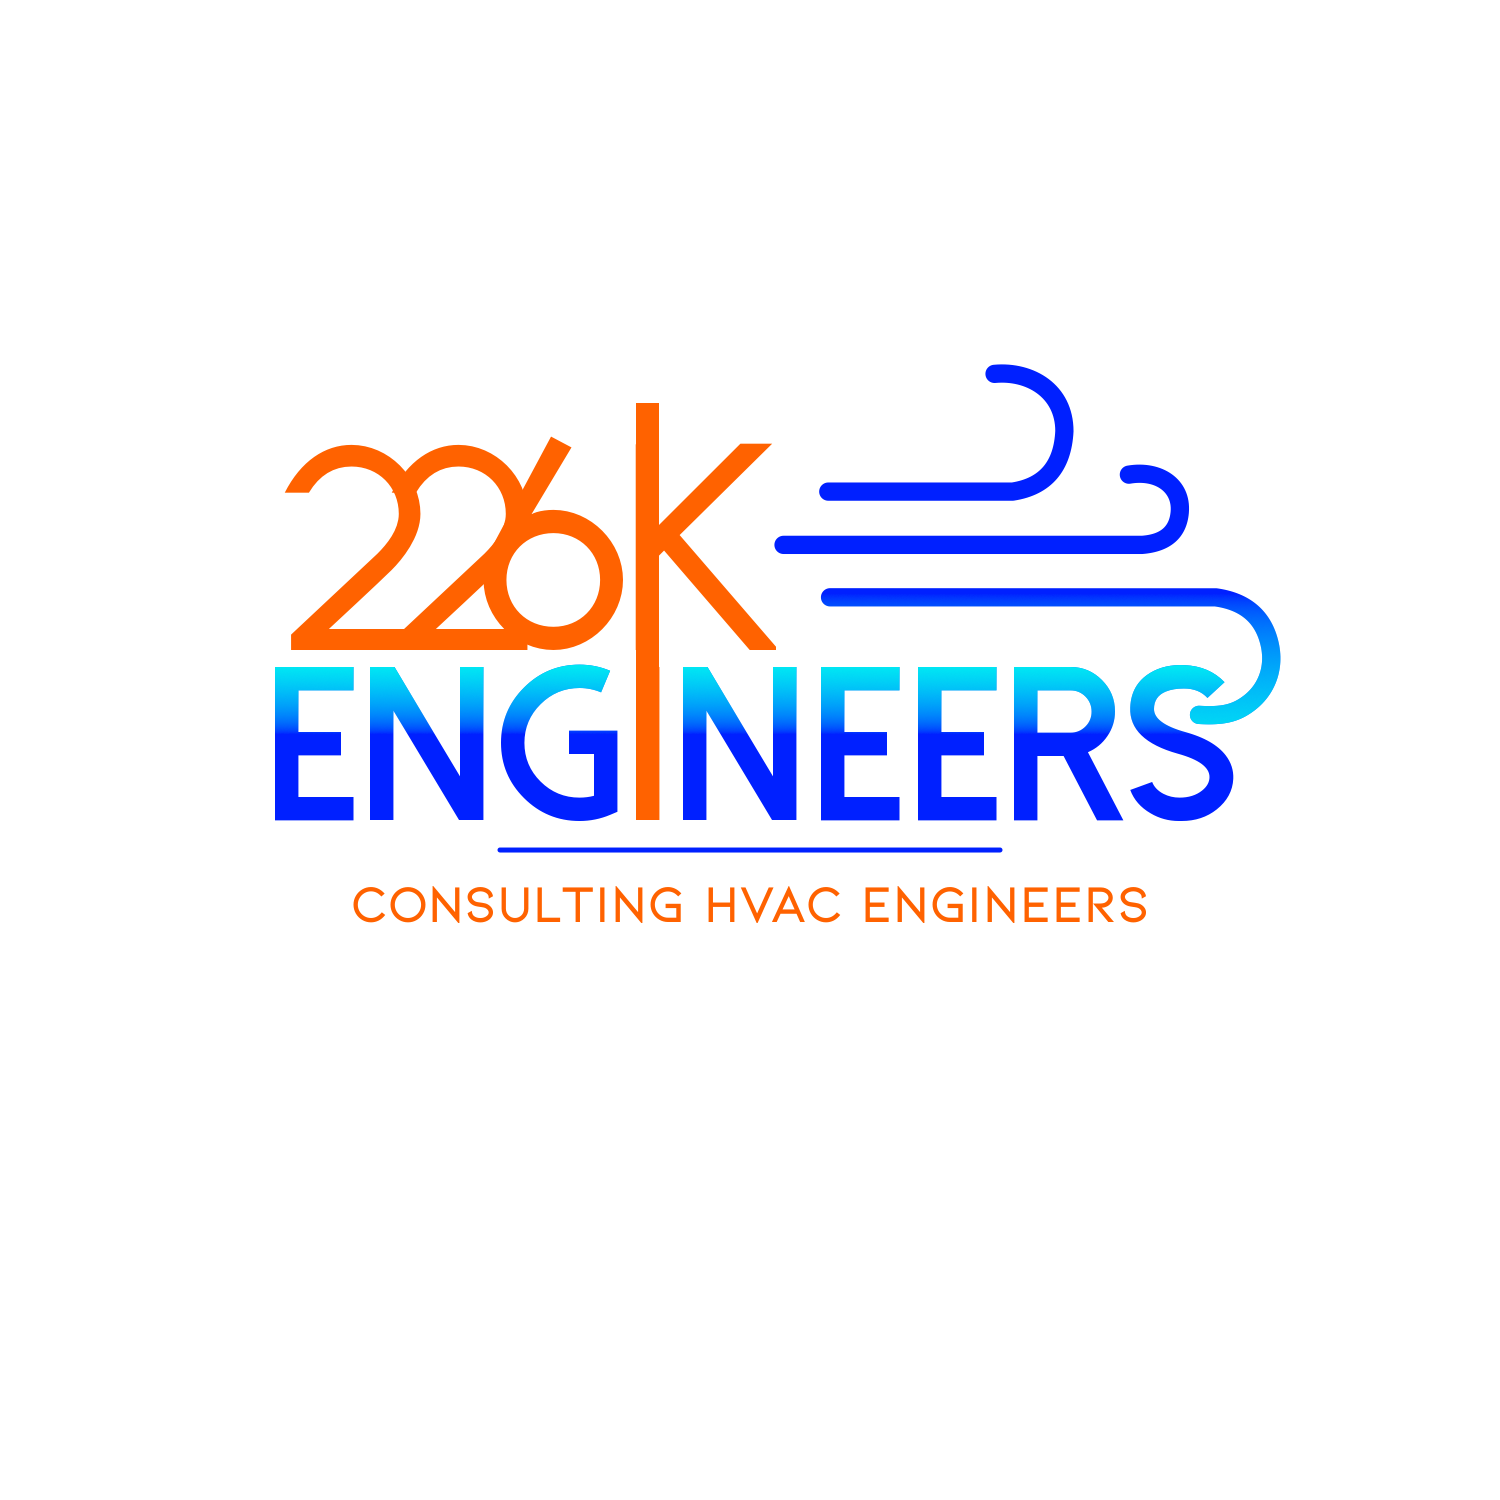 226k-engineers.co.za